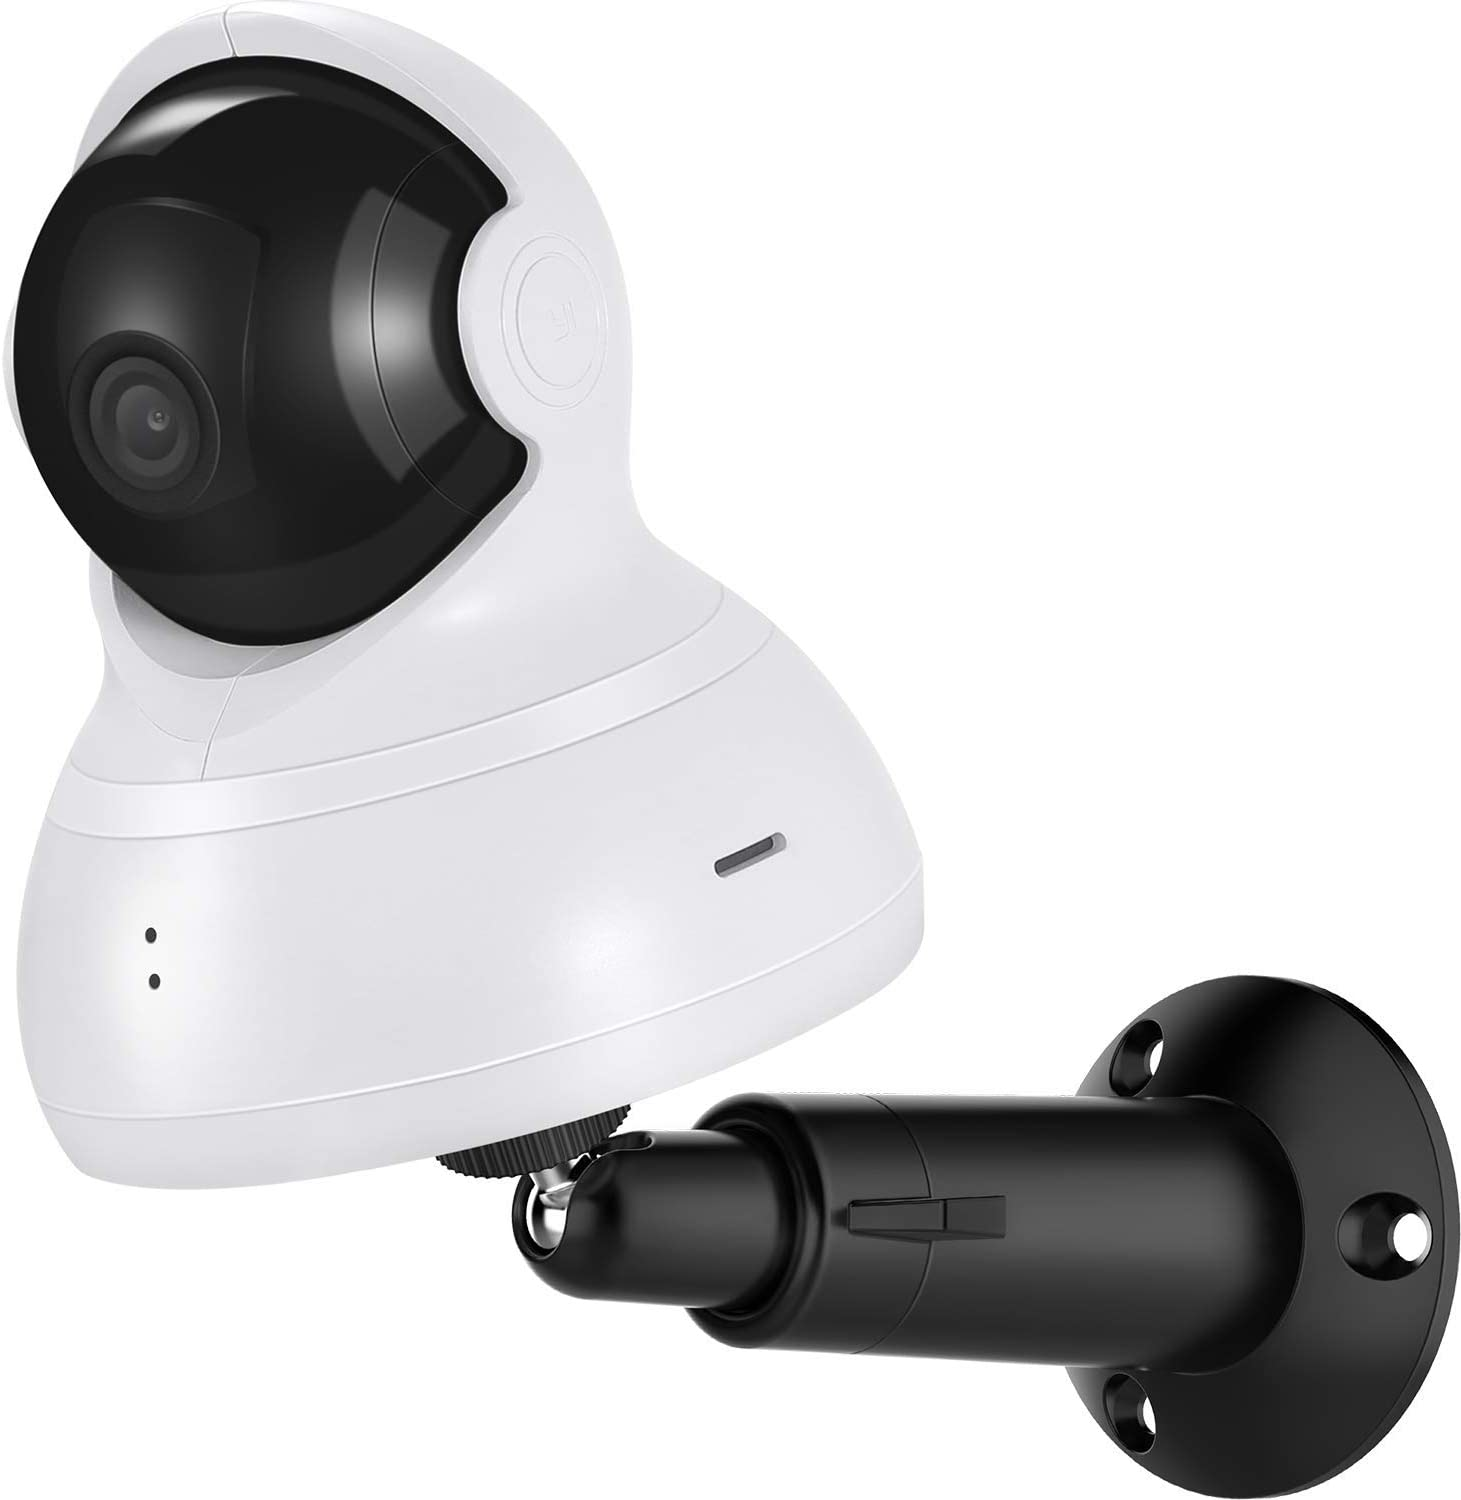 Wall Mount for YI Dome Camera and YI Cloud Home Camera, 360 Degree Adjustable Security Bracket Holder for YI Cam (Camera Not Included) (Black)